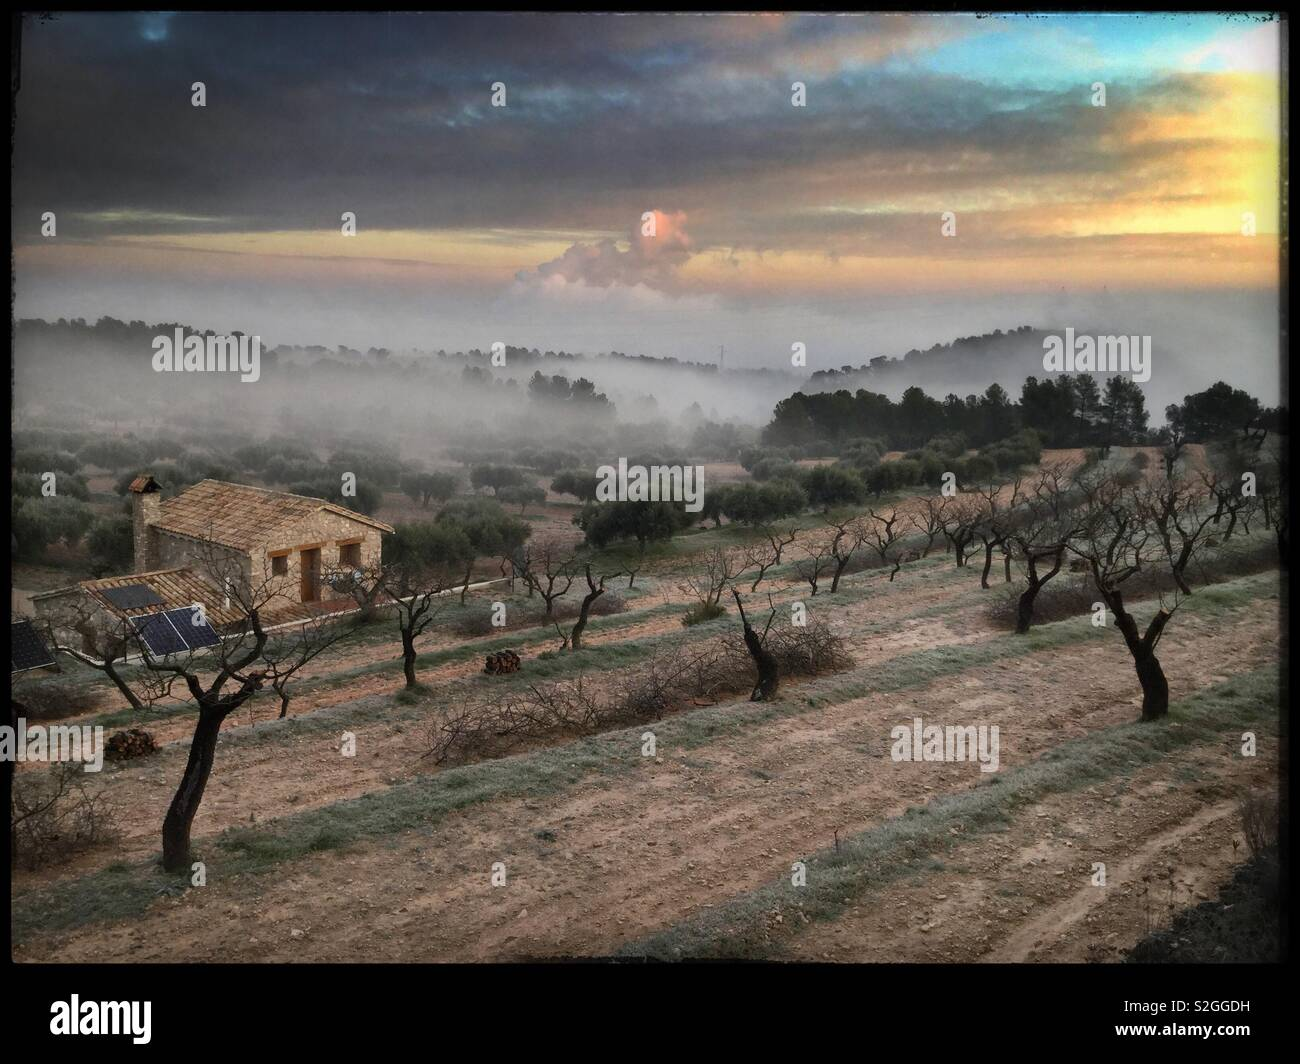 A winter sunrise view over an almond and olive farm, Catalonia, Spain. - Stock Image